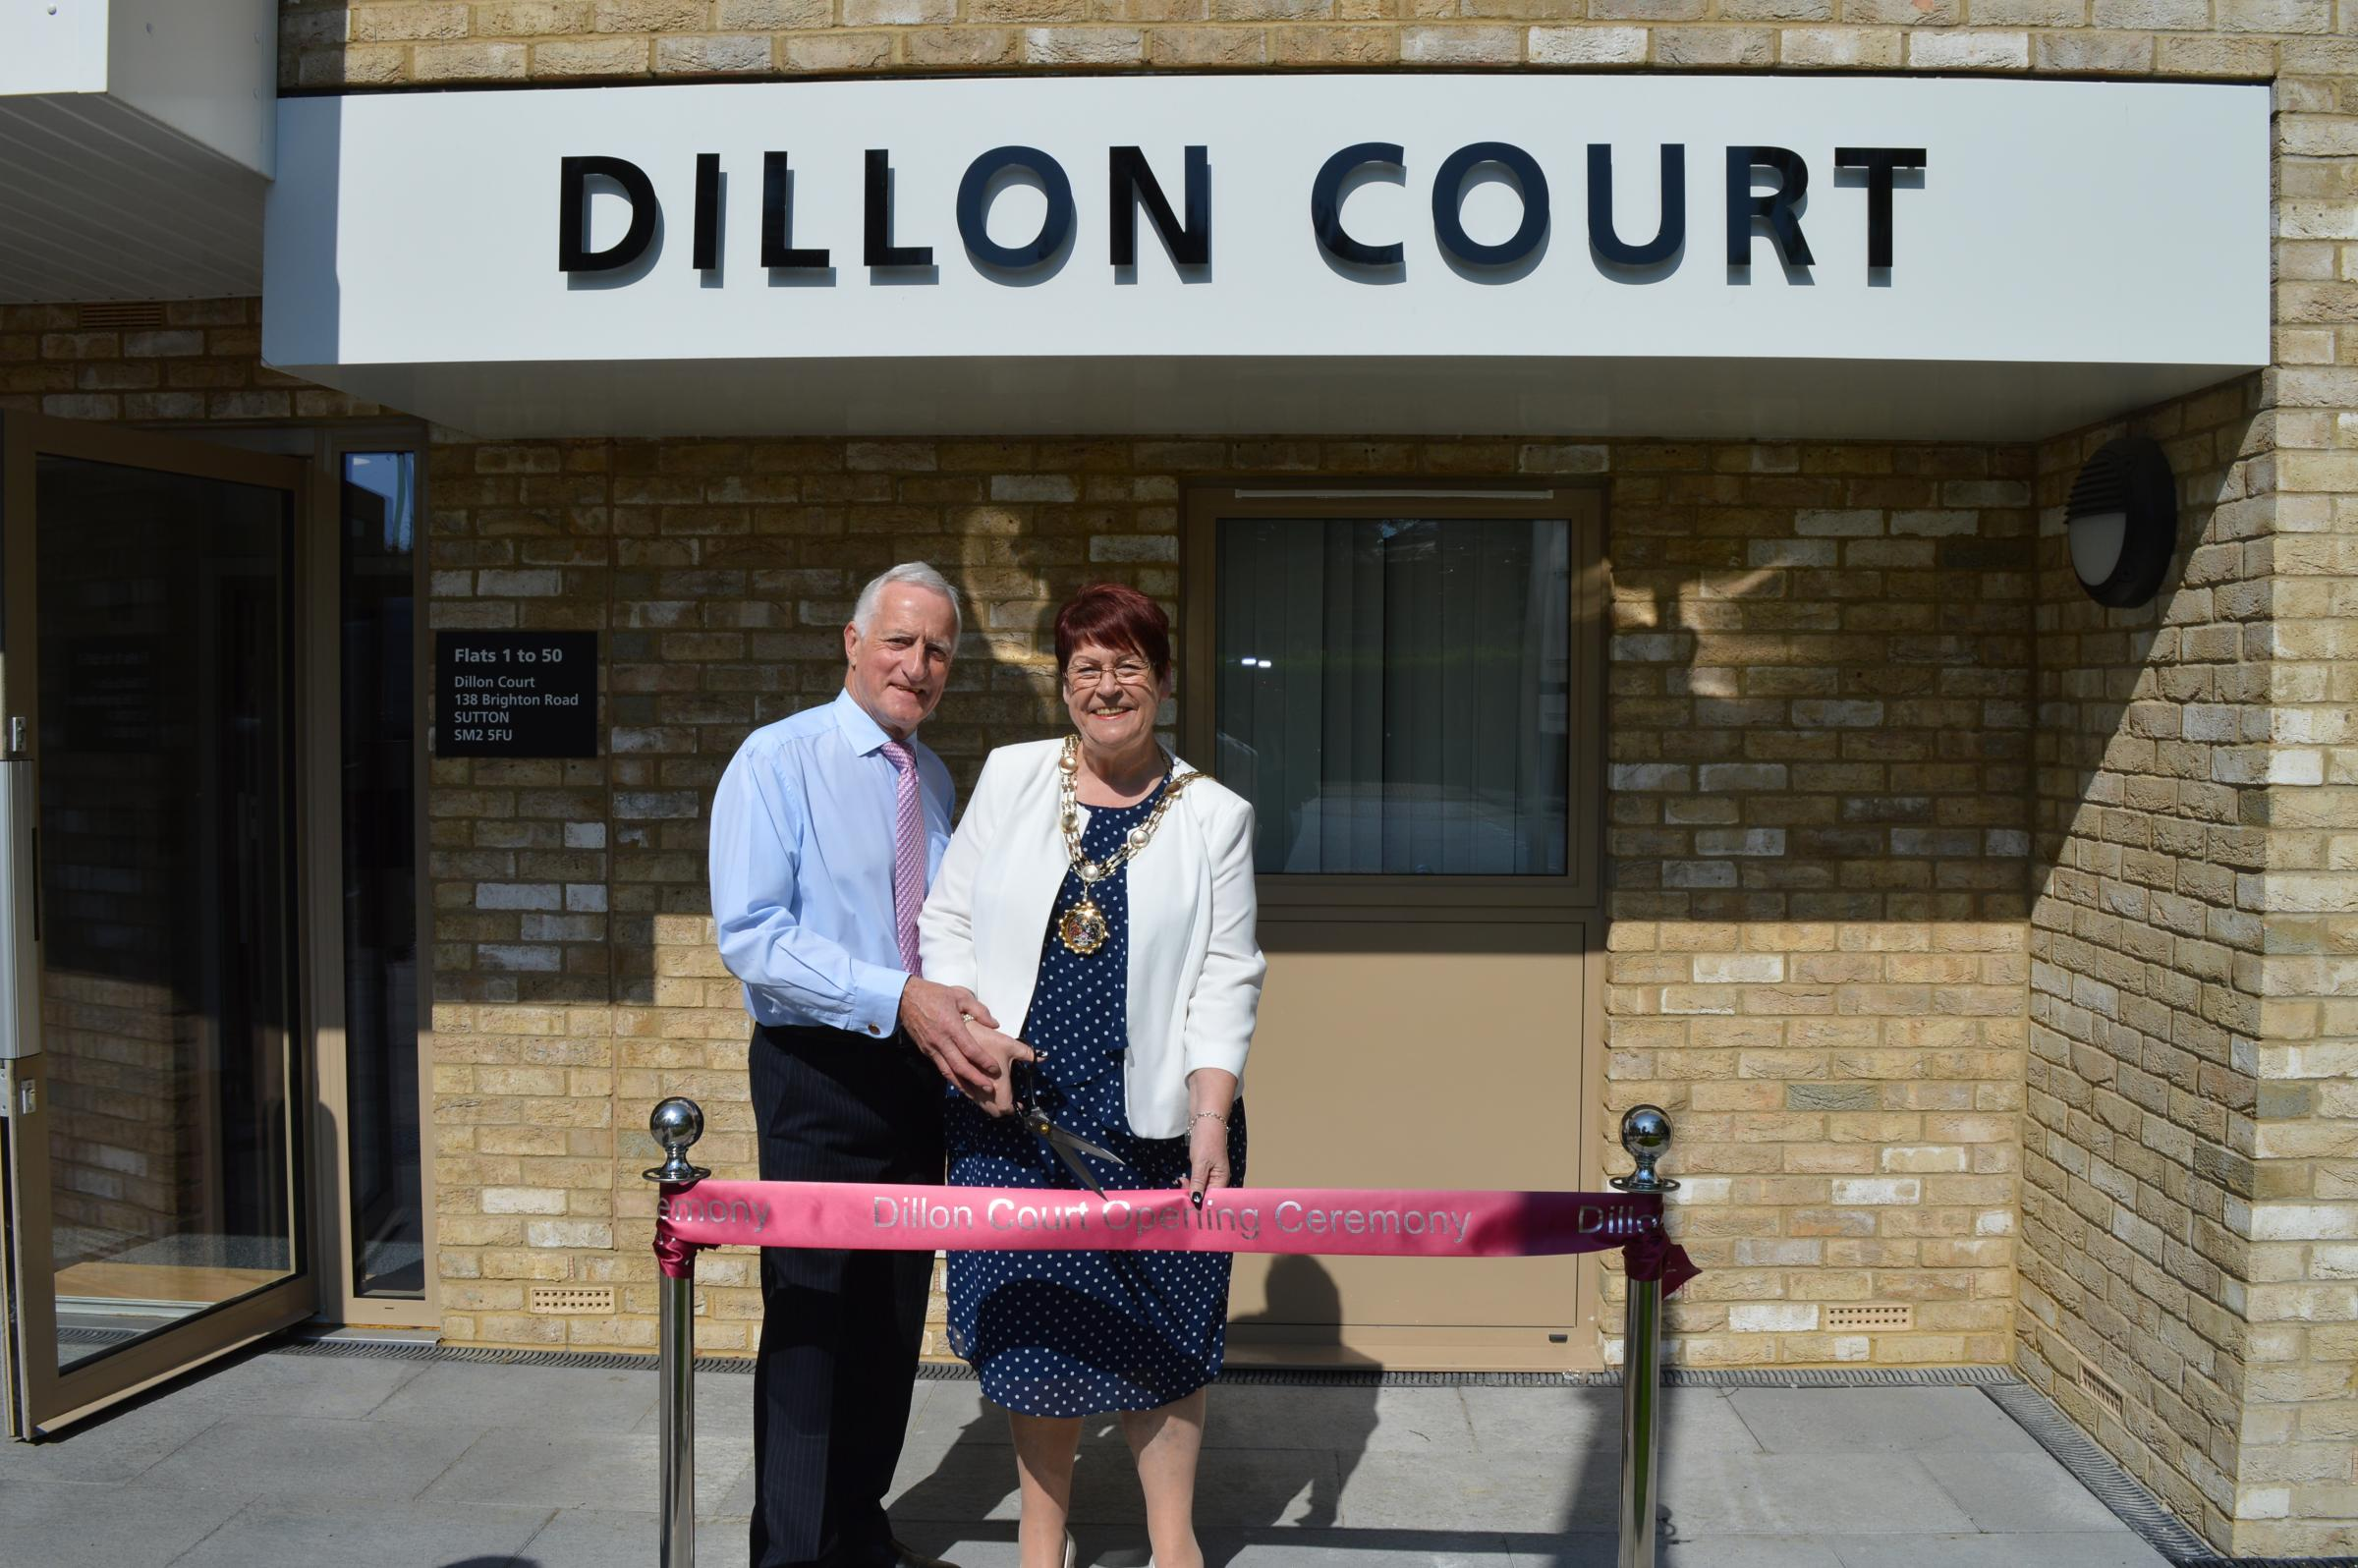 Dillon Court opening ceremony